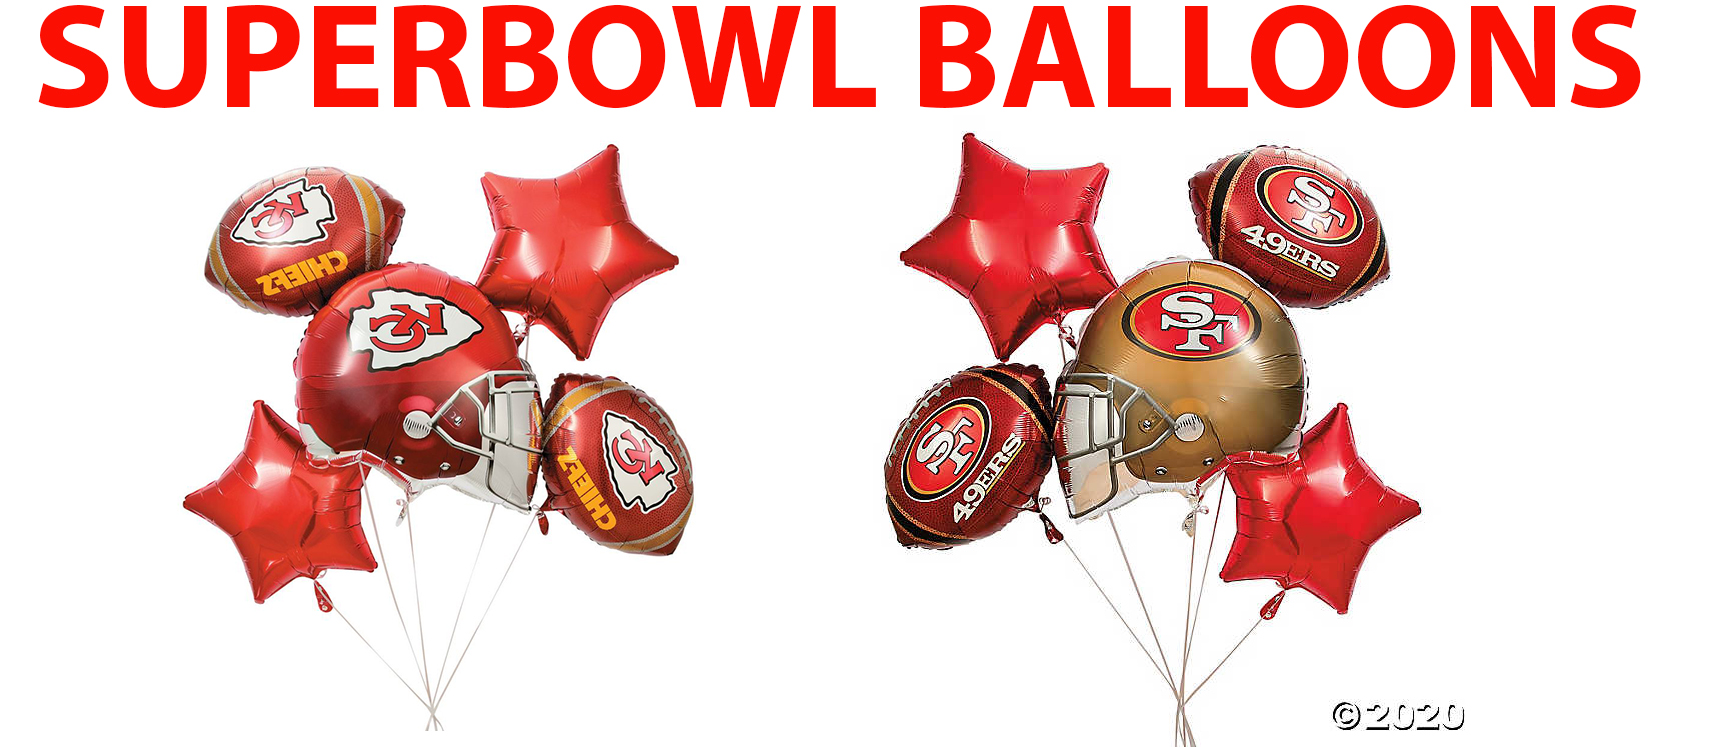 SUPER BOWL BALLOONS